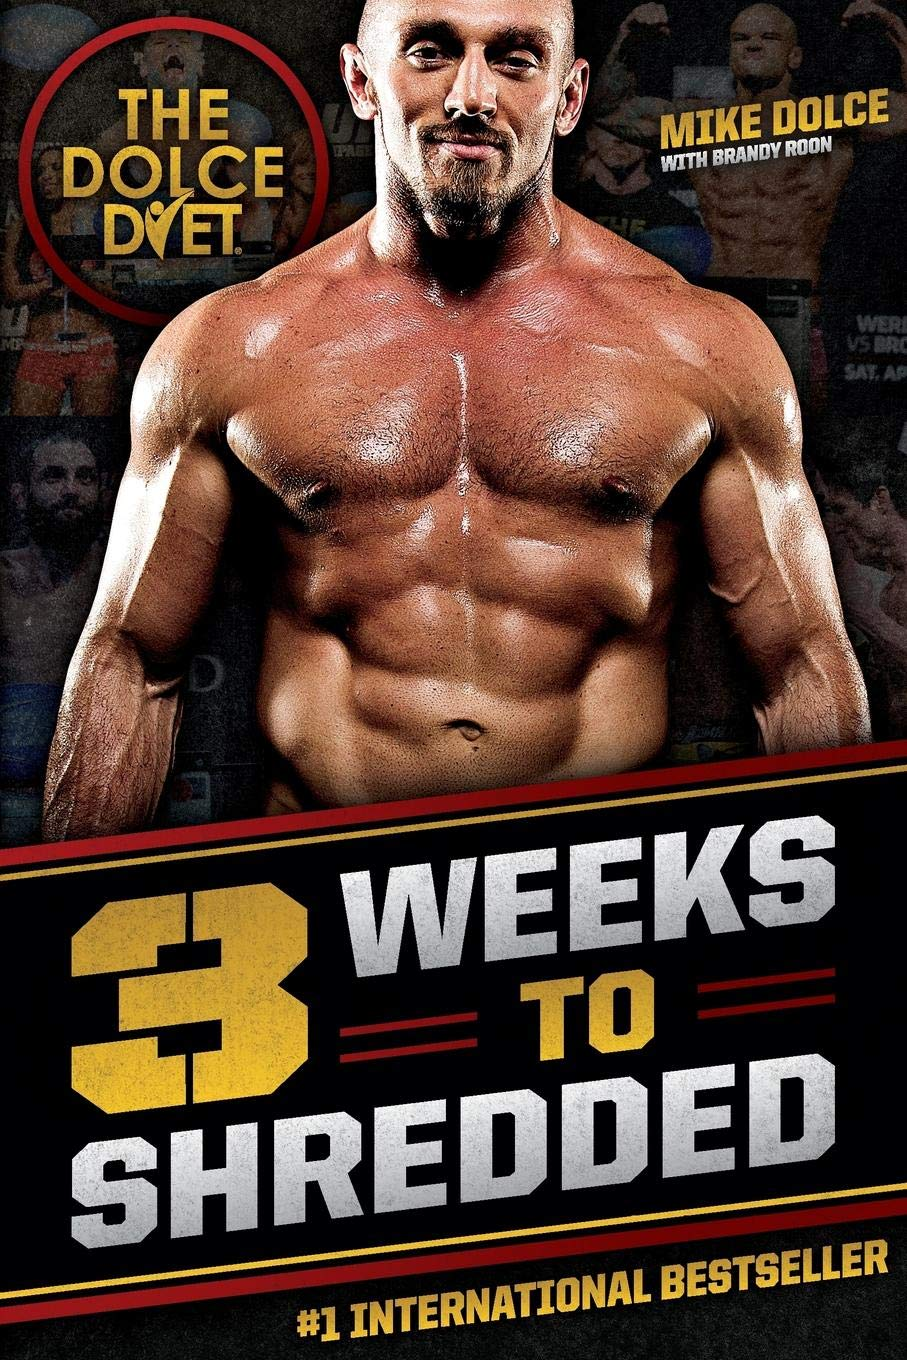 The Dolce Diet: 3 Weeks to Shredded by Mike Dolce